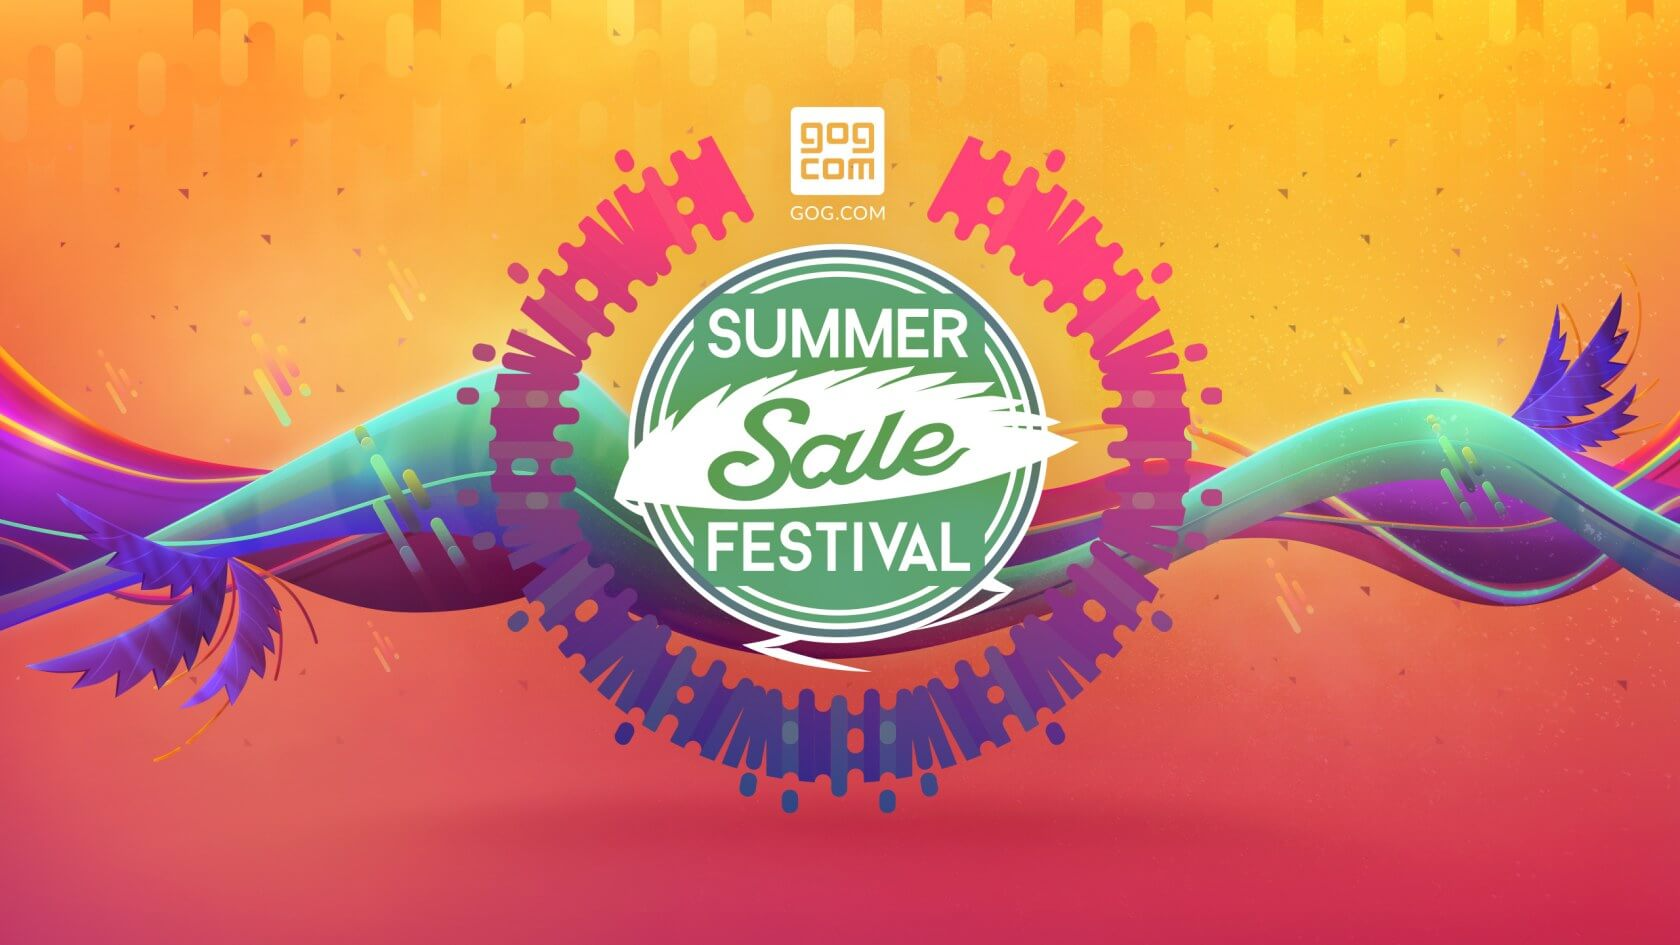 GOG kicks off its annual Summer Sale with a free game, deep discounts, and bundle deals